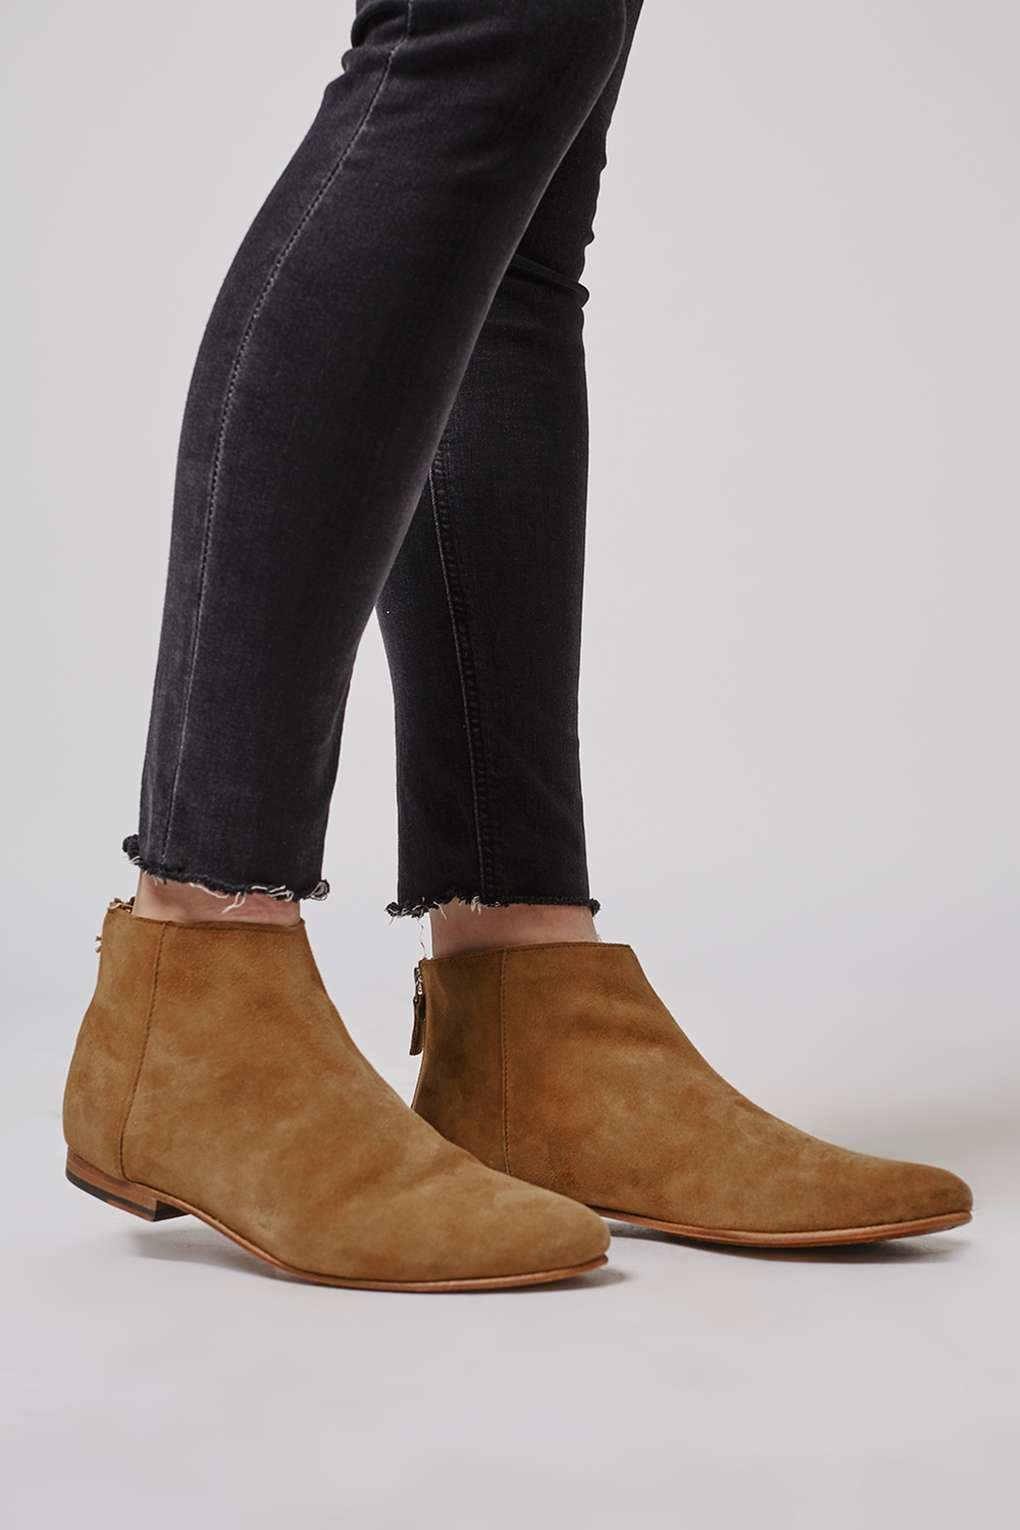 topshop apple bee ankle boots in brown lyst